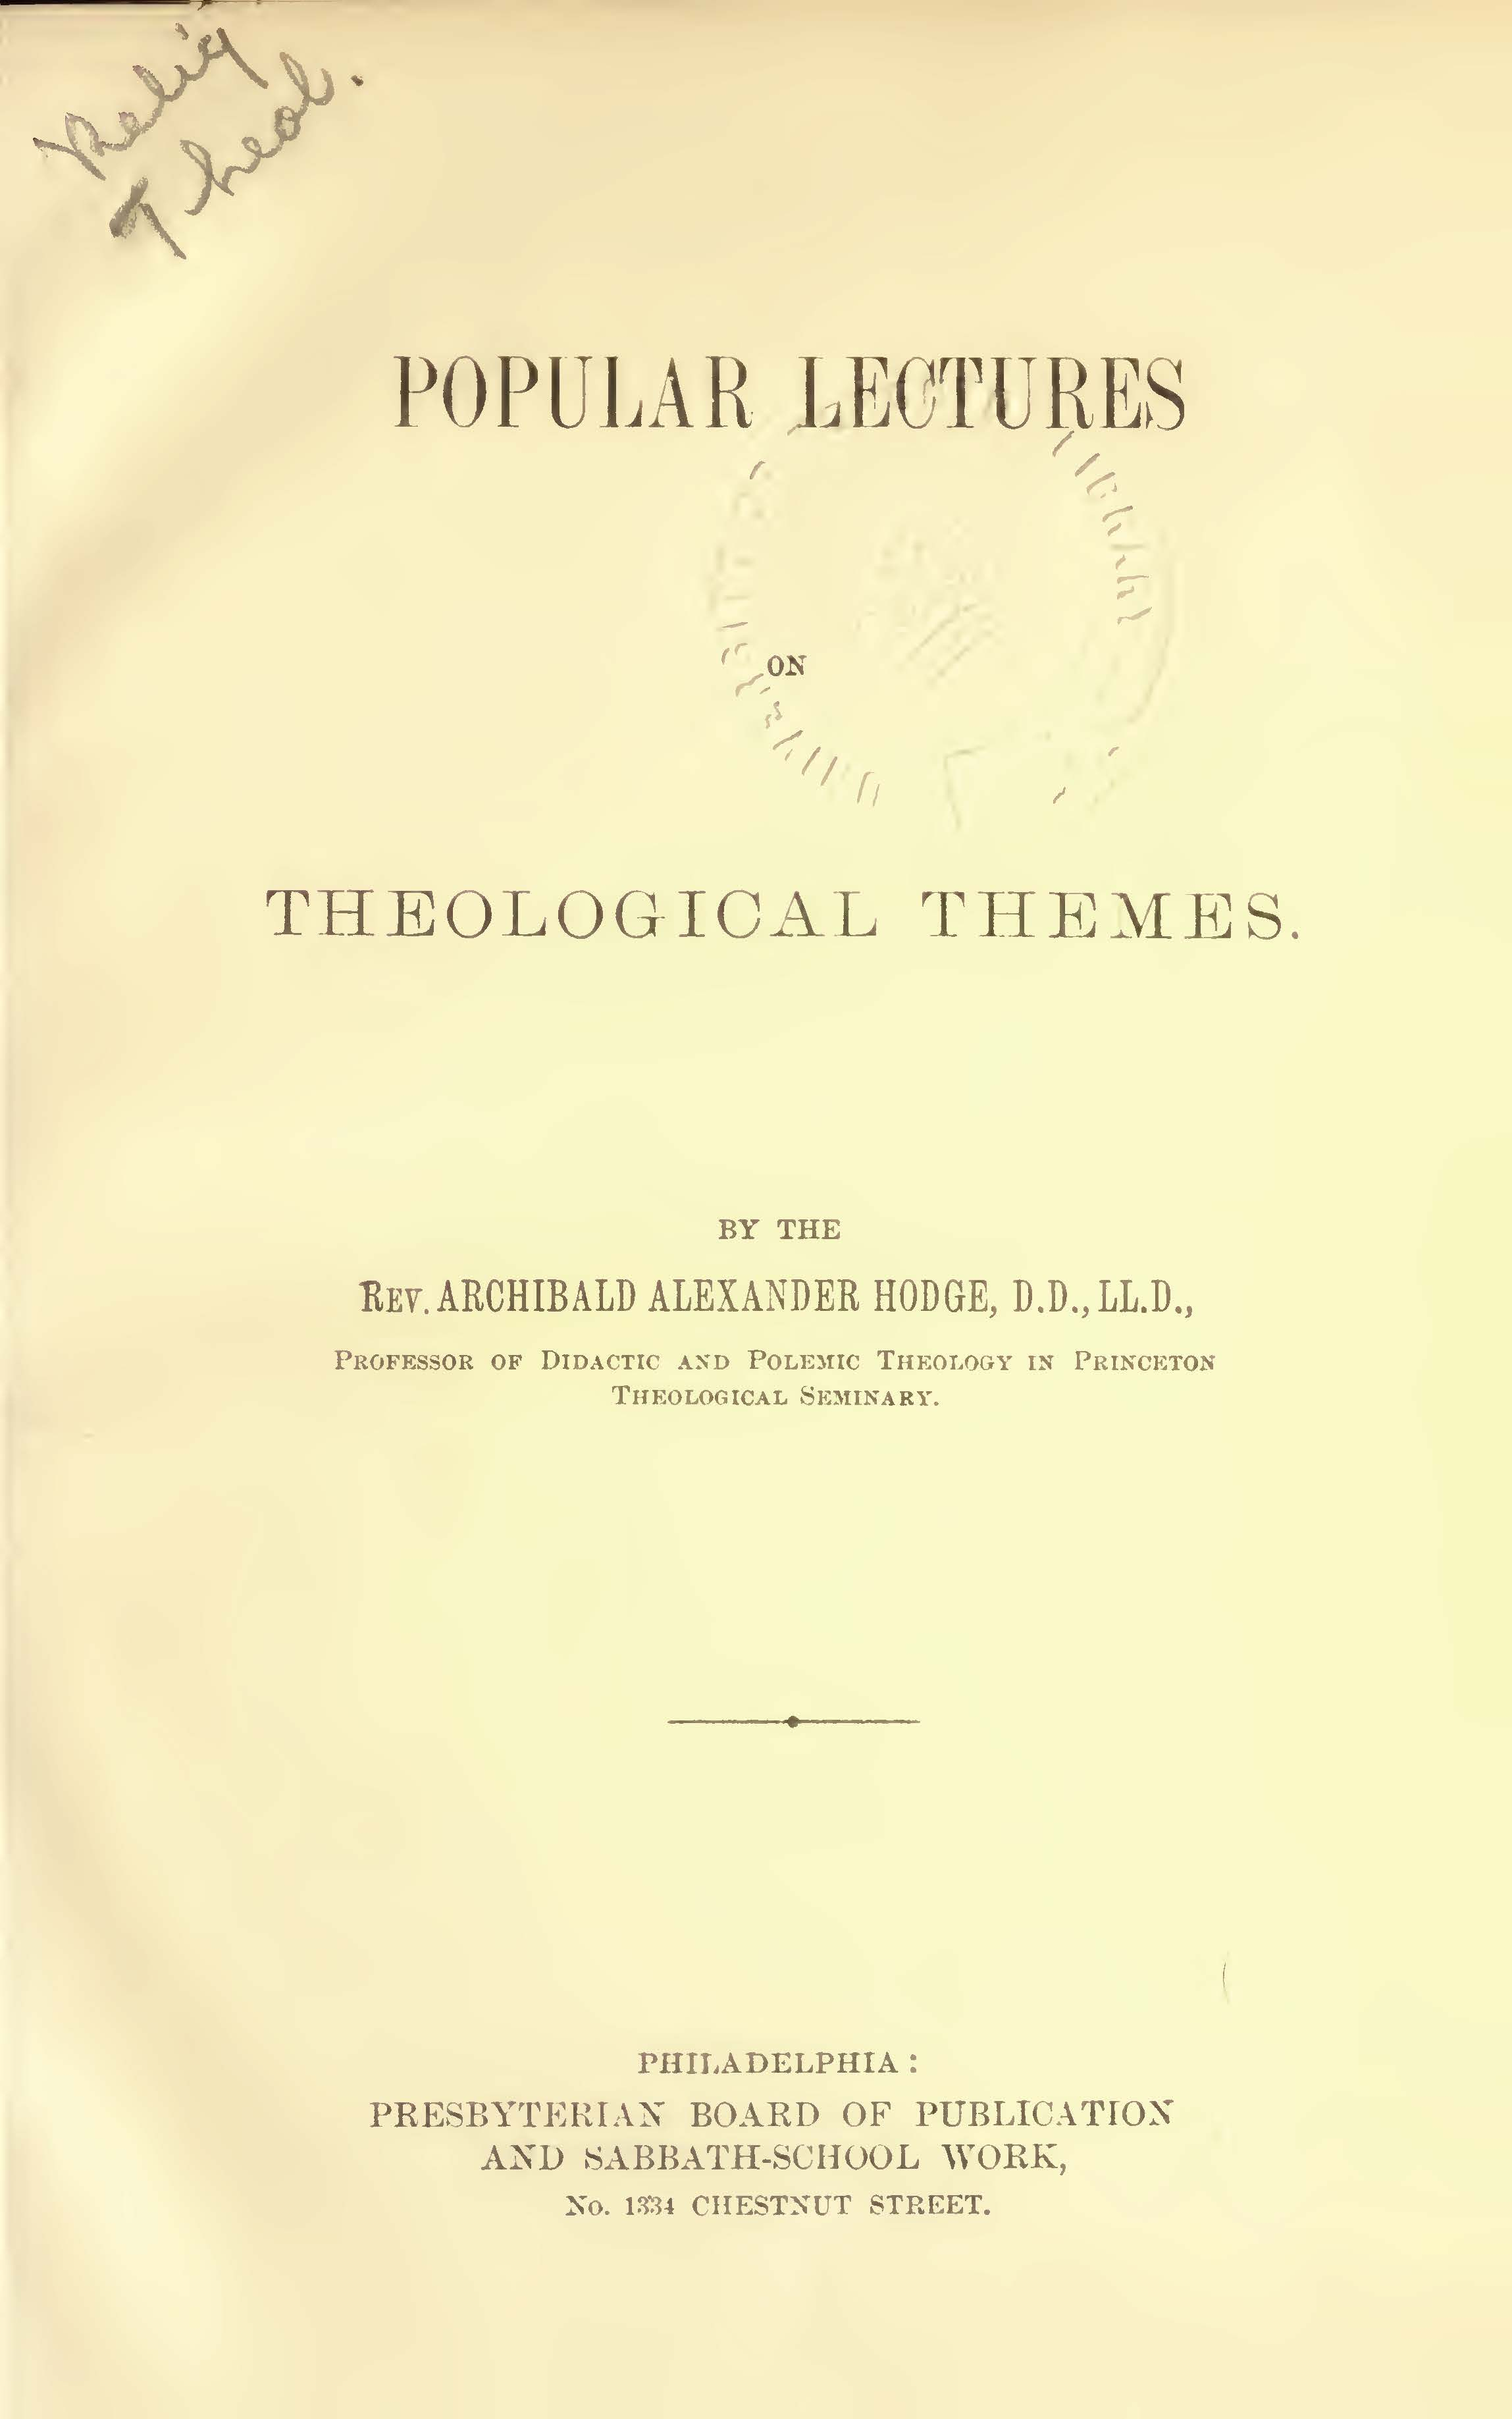 Hodge, A.A., Popular Lectures on Theological Themes Title Page.jpg